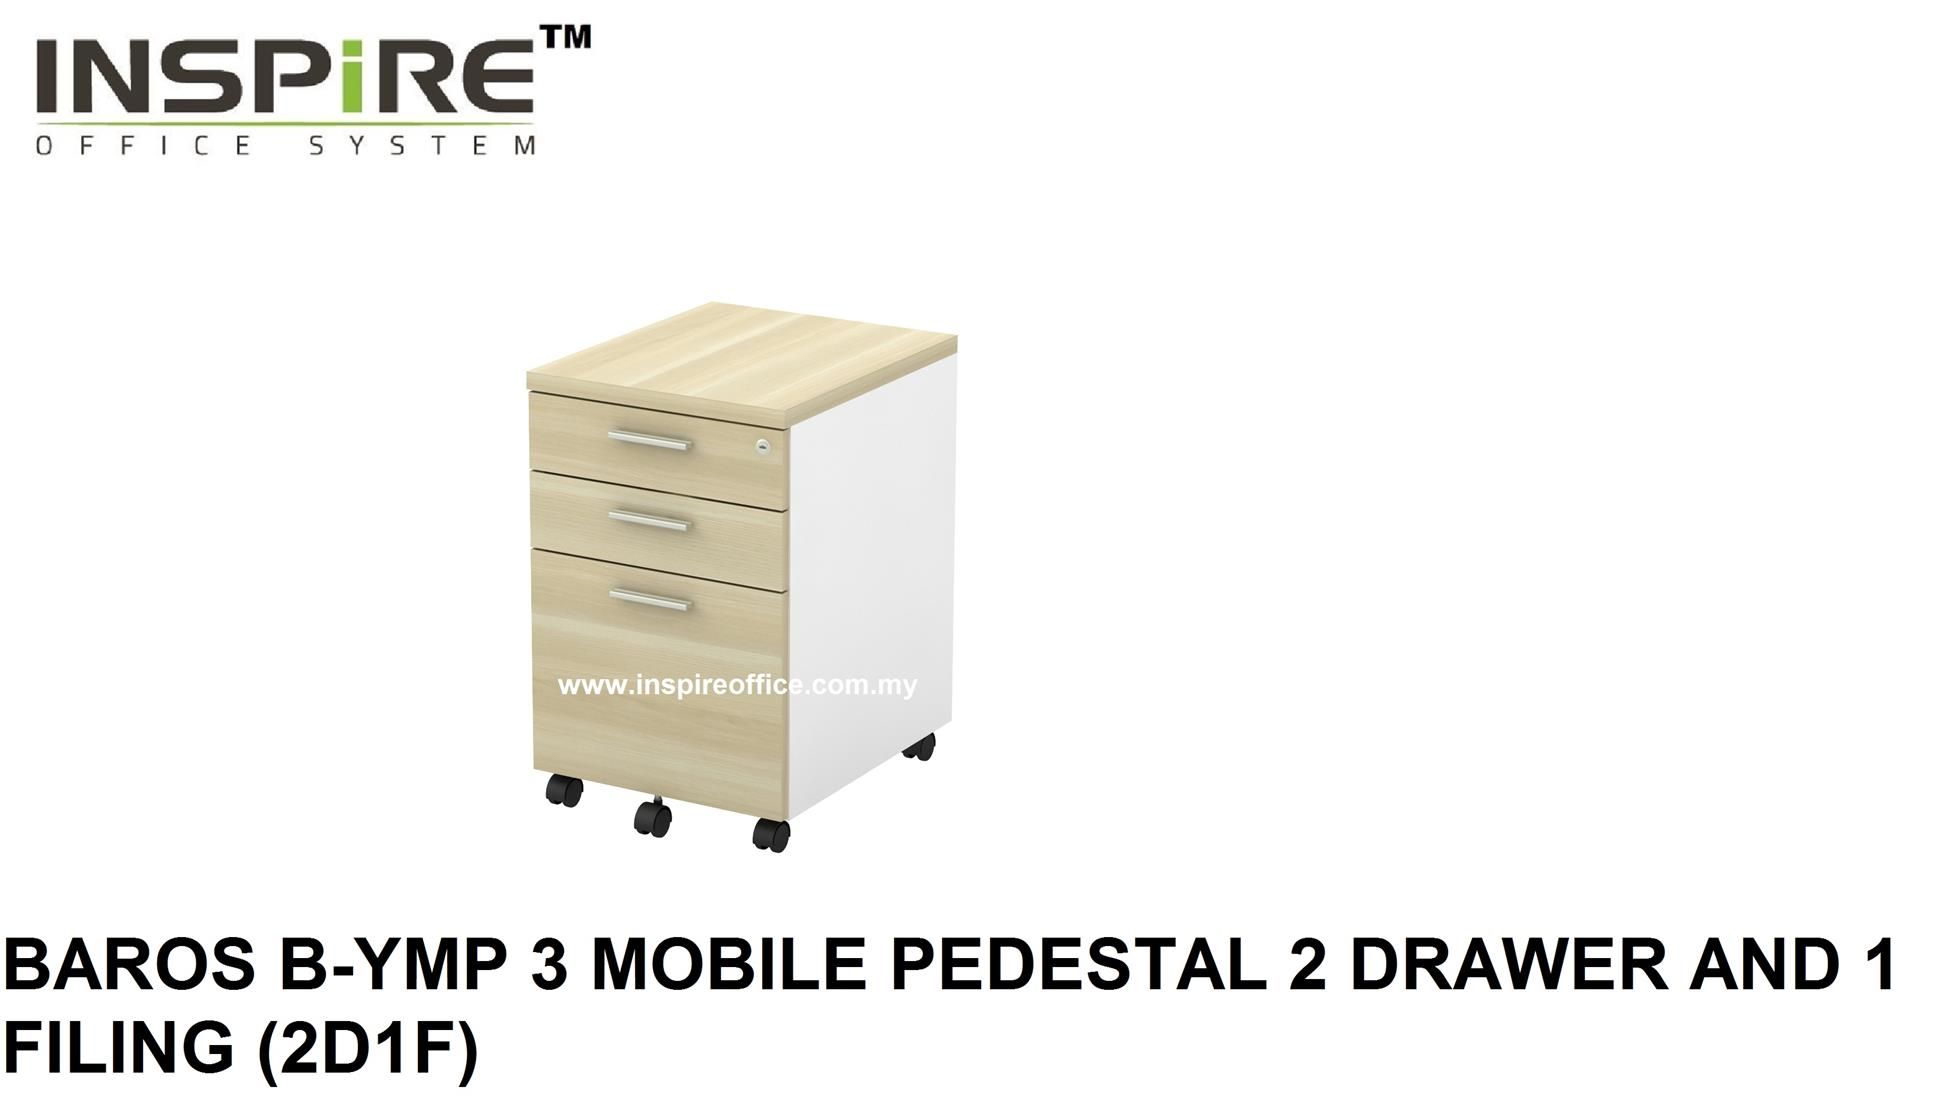 BAROS B-YMP 3 MOBILE PEDESTAL 2 DRAWER AND 1 FILING (2D1F)